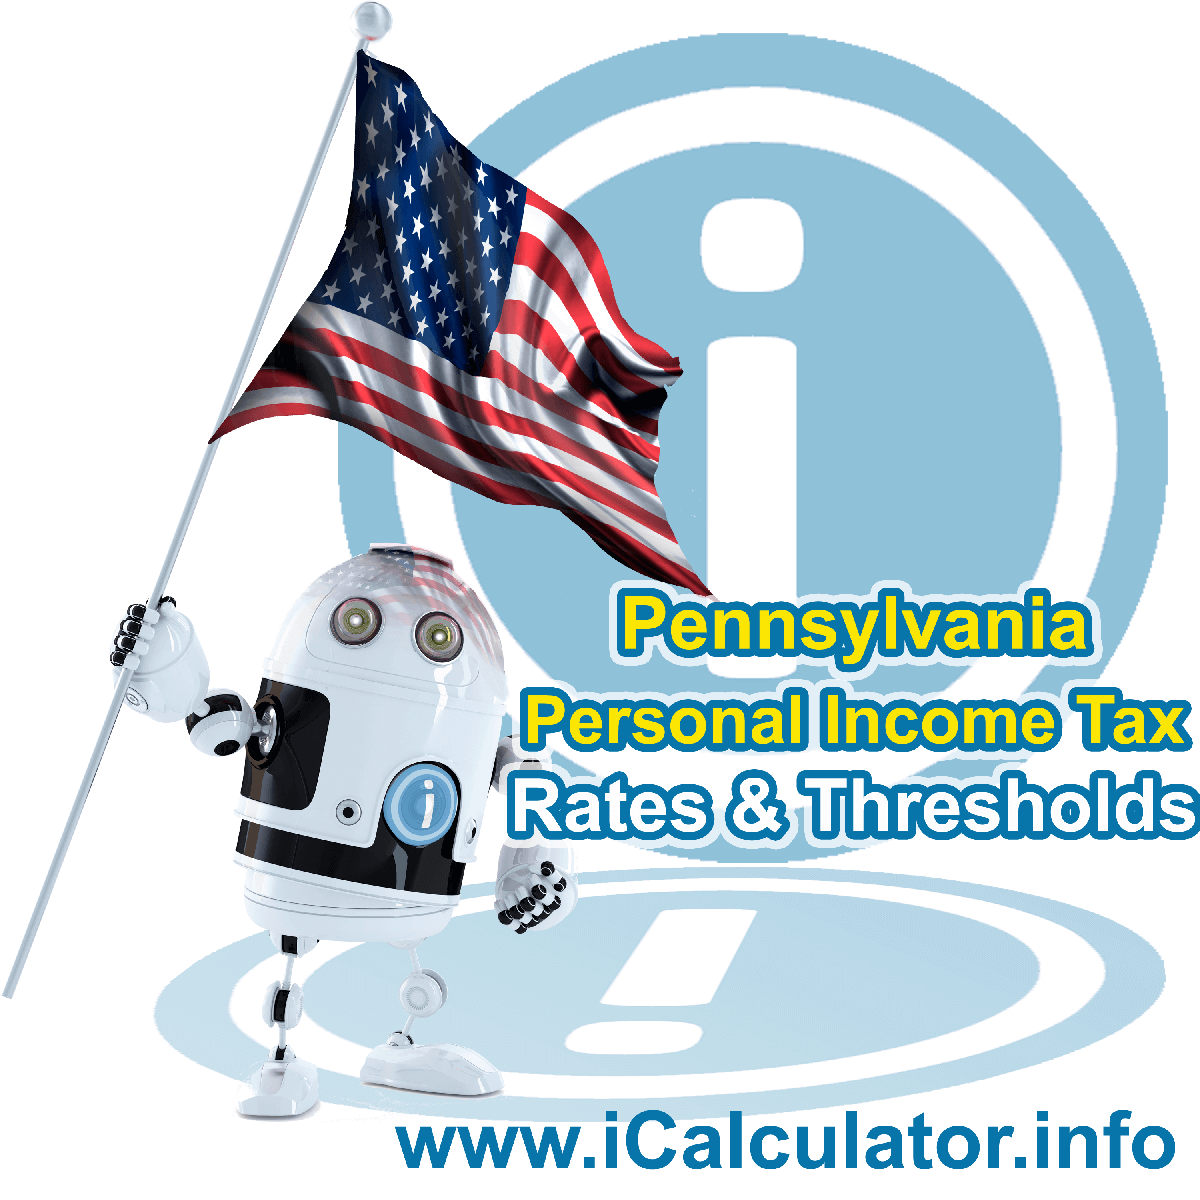 Pennsylvania State Tax Tables 2014. This image displays details of the Pennsylvania State Tax Tables for the 2014 tax return year which is provided in support of the 2014 US Tax Calculator